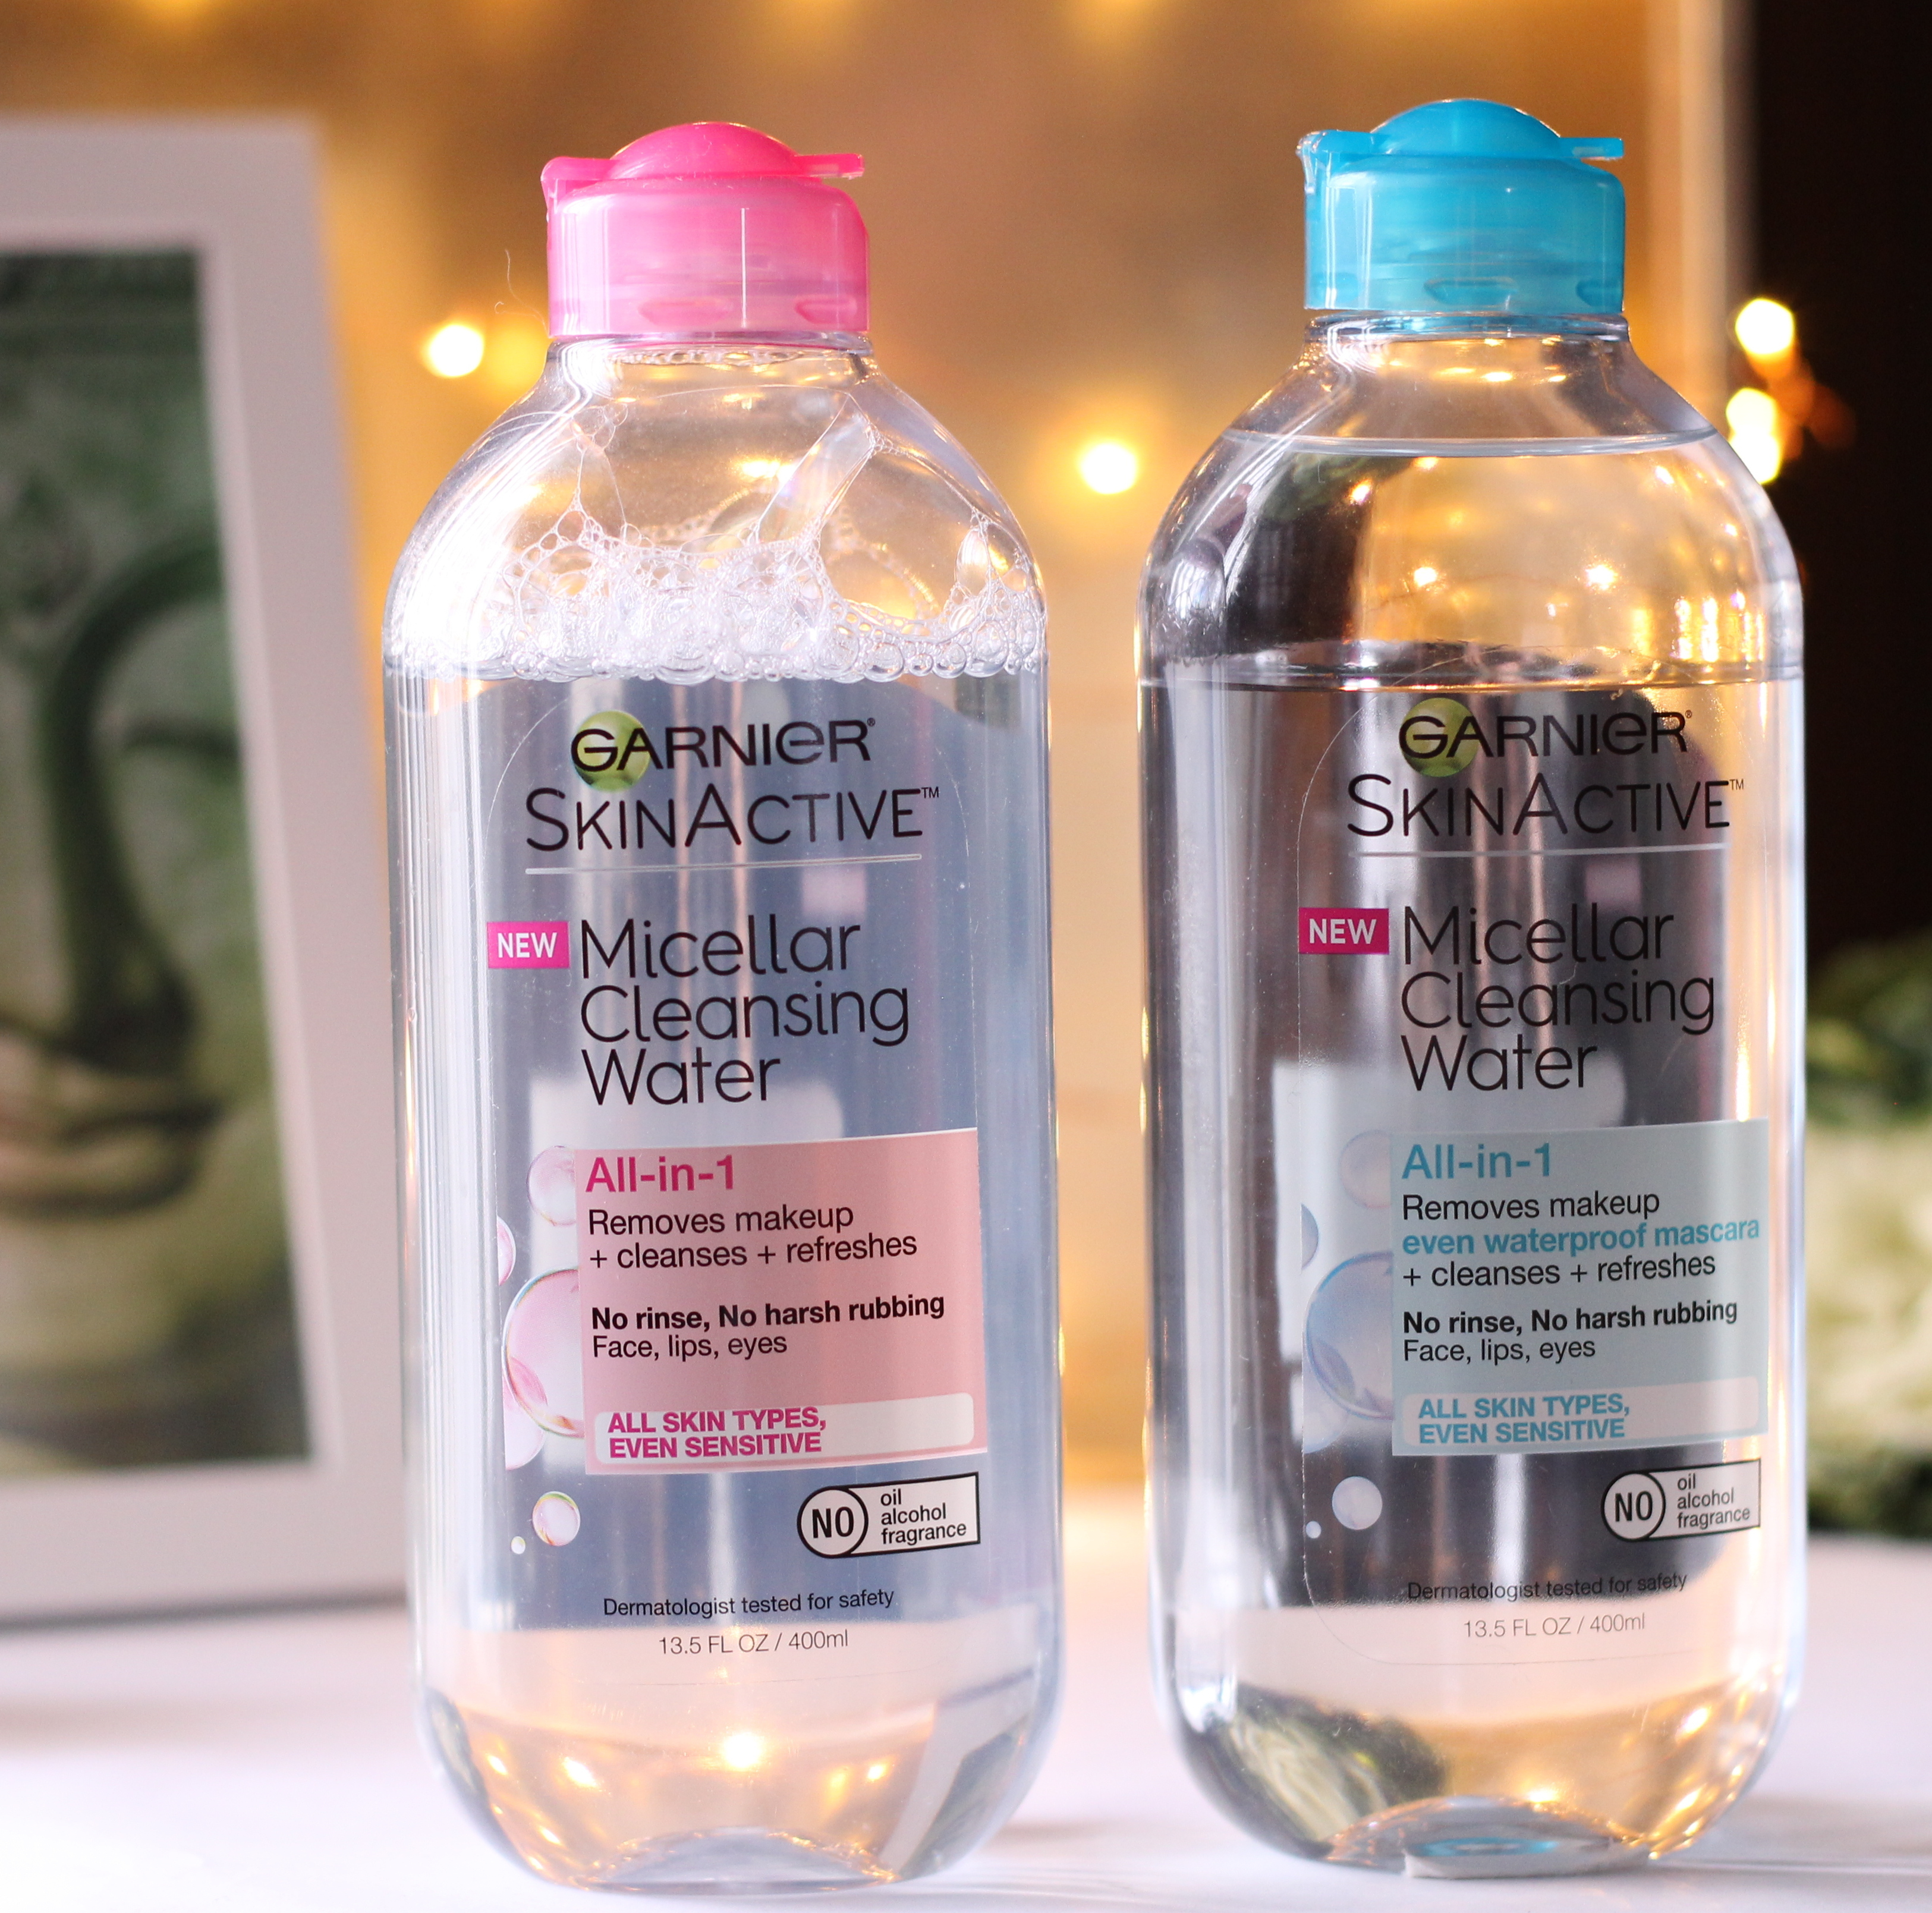 How to use Garnier Micellar Cleansing Water